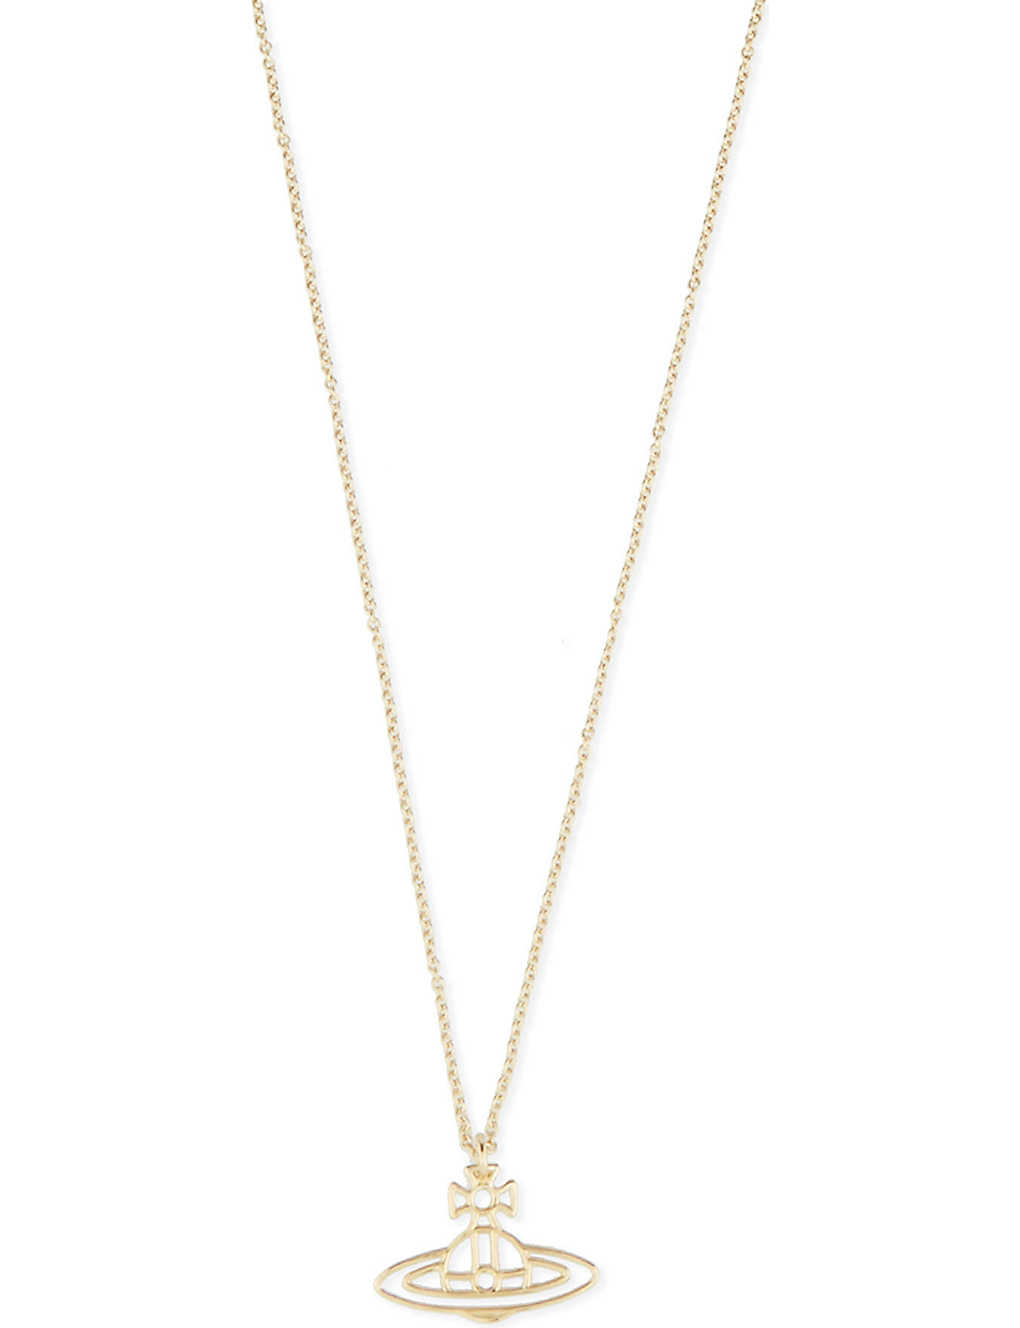 2e3a6afb2cdbf9 VIVIENNE WESTWOOD JEWELLERY - Thin lines flat orb pendant ...